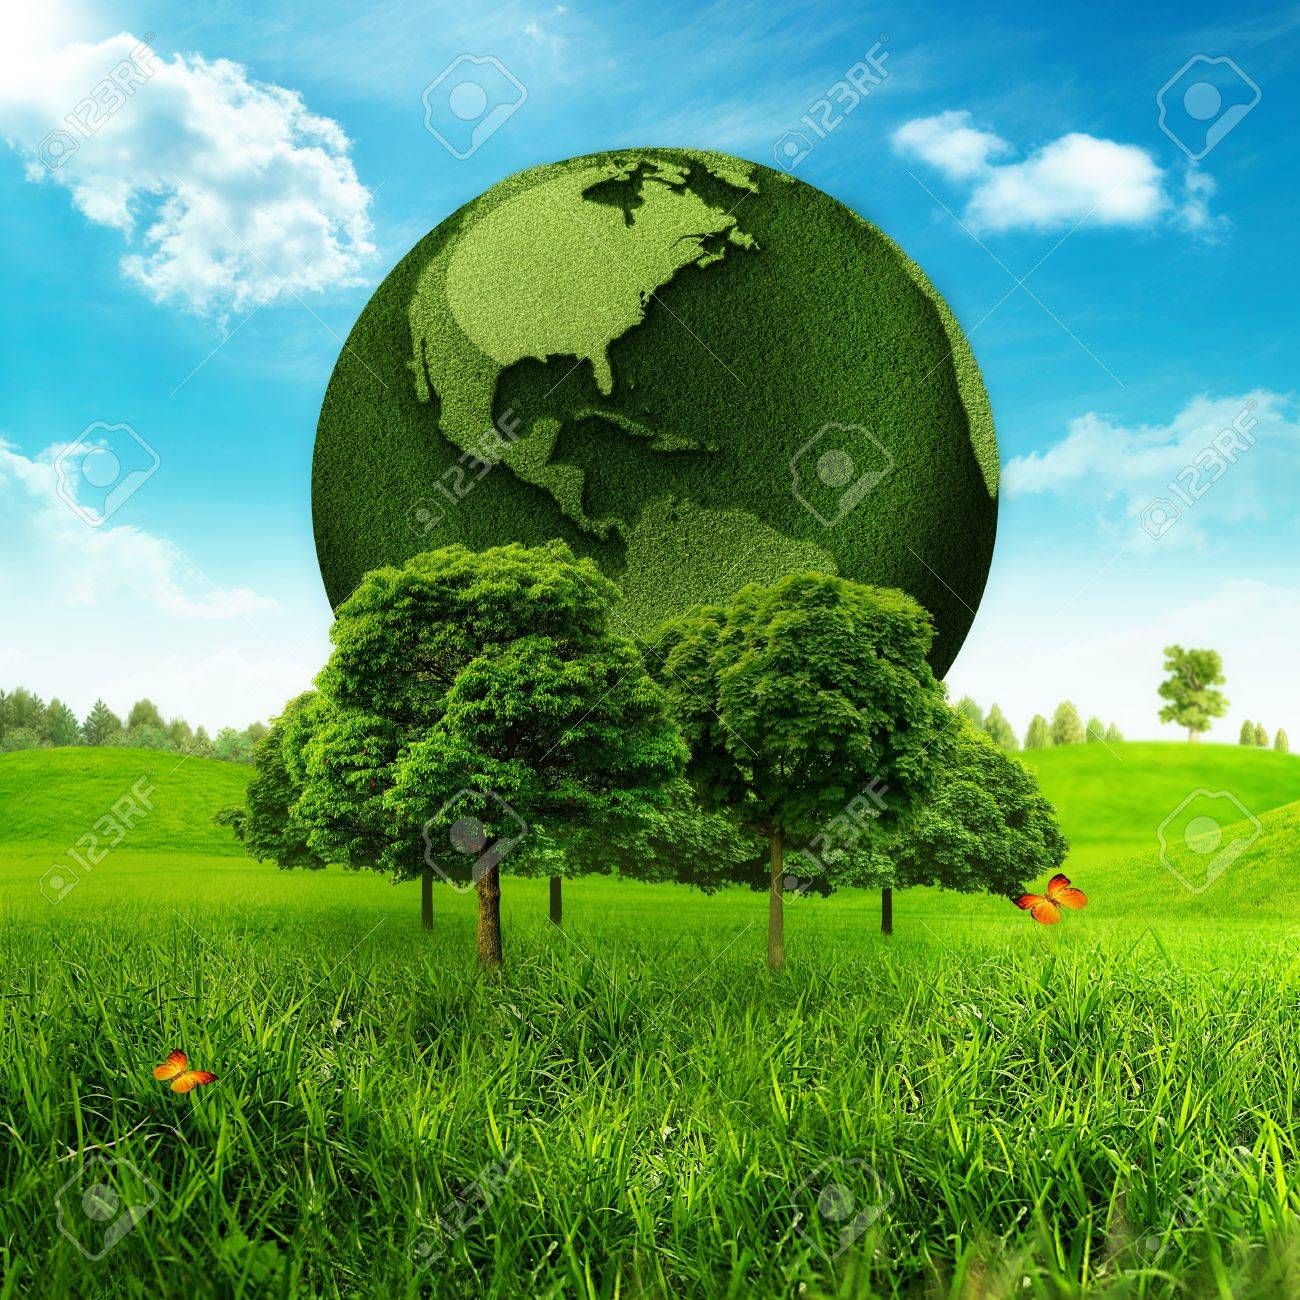 Green Earth Abstract environmental backgrounds - 18245742